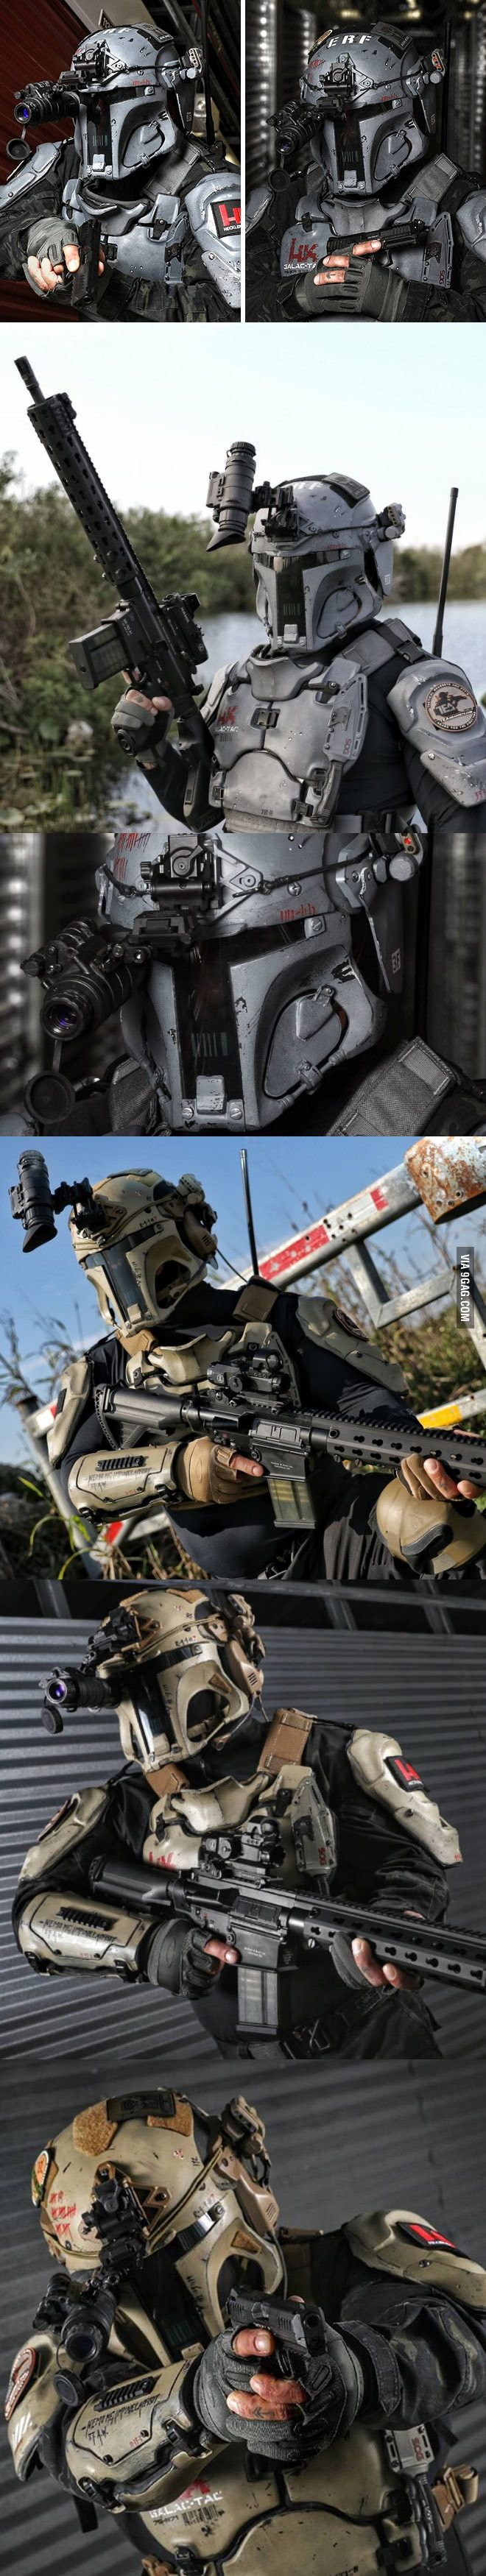 Ballistic armor company AR500 and H&K produce real life Storm Trooper gear that is capable of stopping real bullets